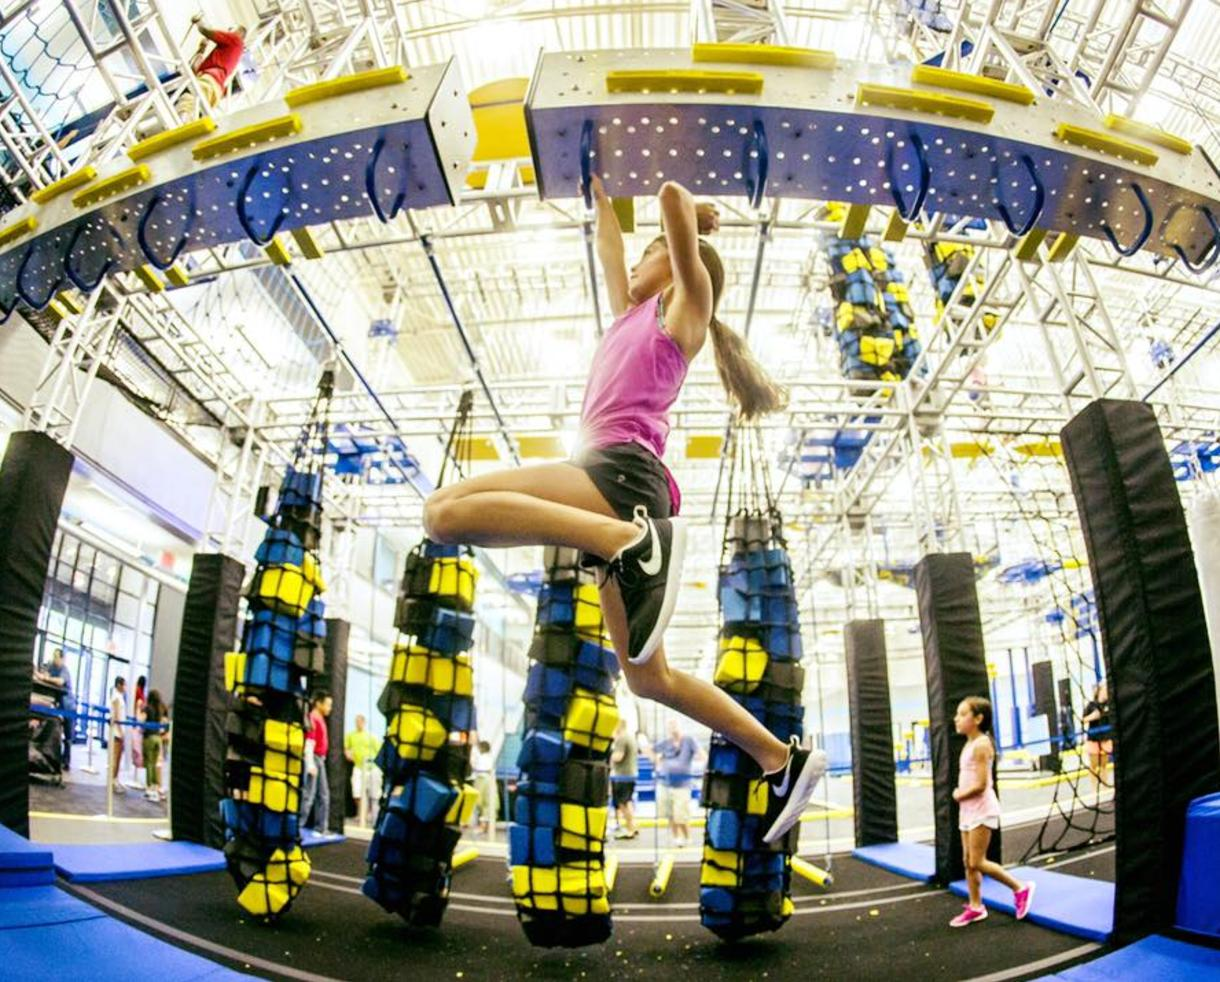 $12 for Admission to BRAND NEW ZavaZone STERLING, VA + Jump Socks! Includes Jump & Adventure Zone, Climbing, American Ninja Warrior Challenges & More for Ages 5+ (45% Off)